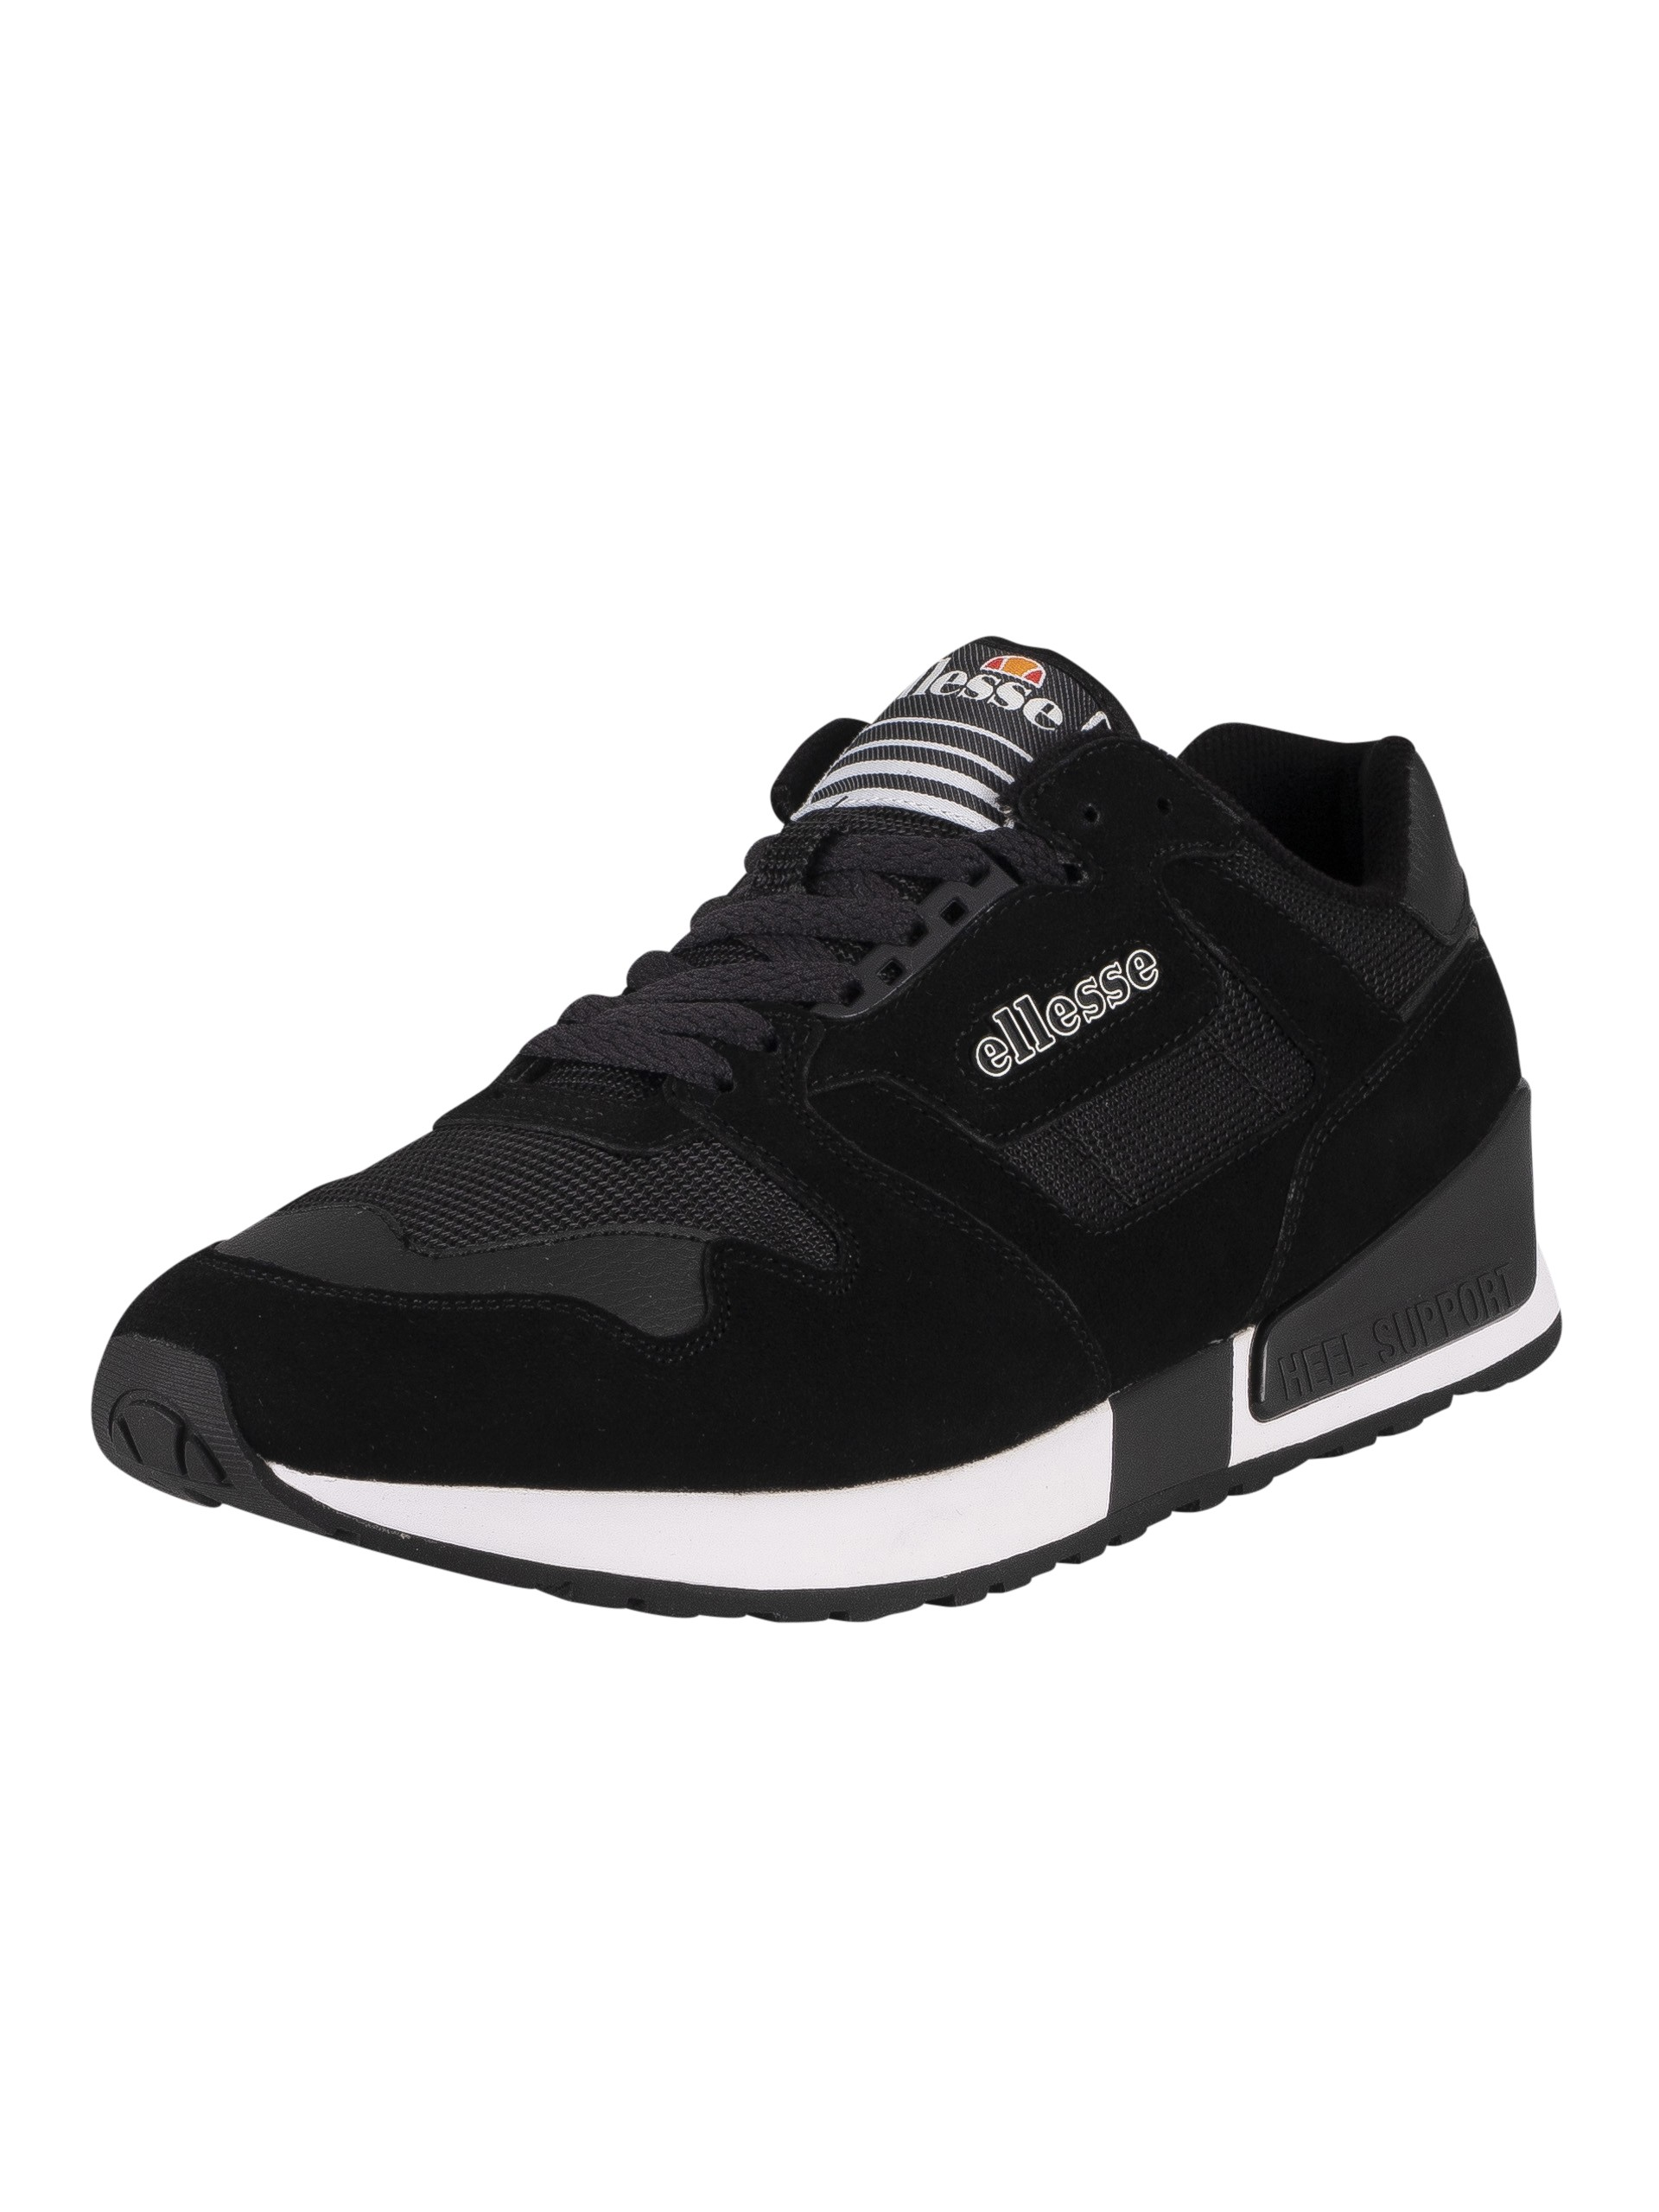 Ellesse 147 Suede Trainers - Black/White